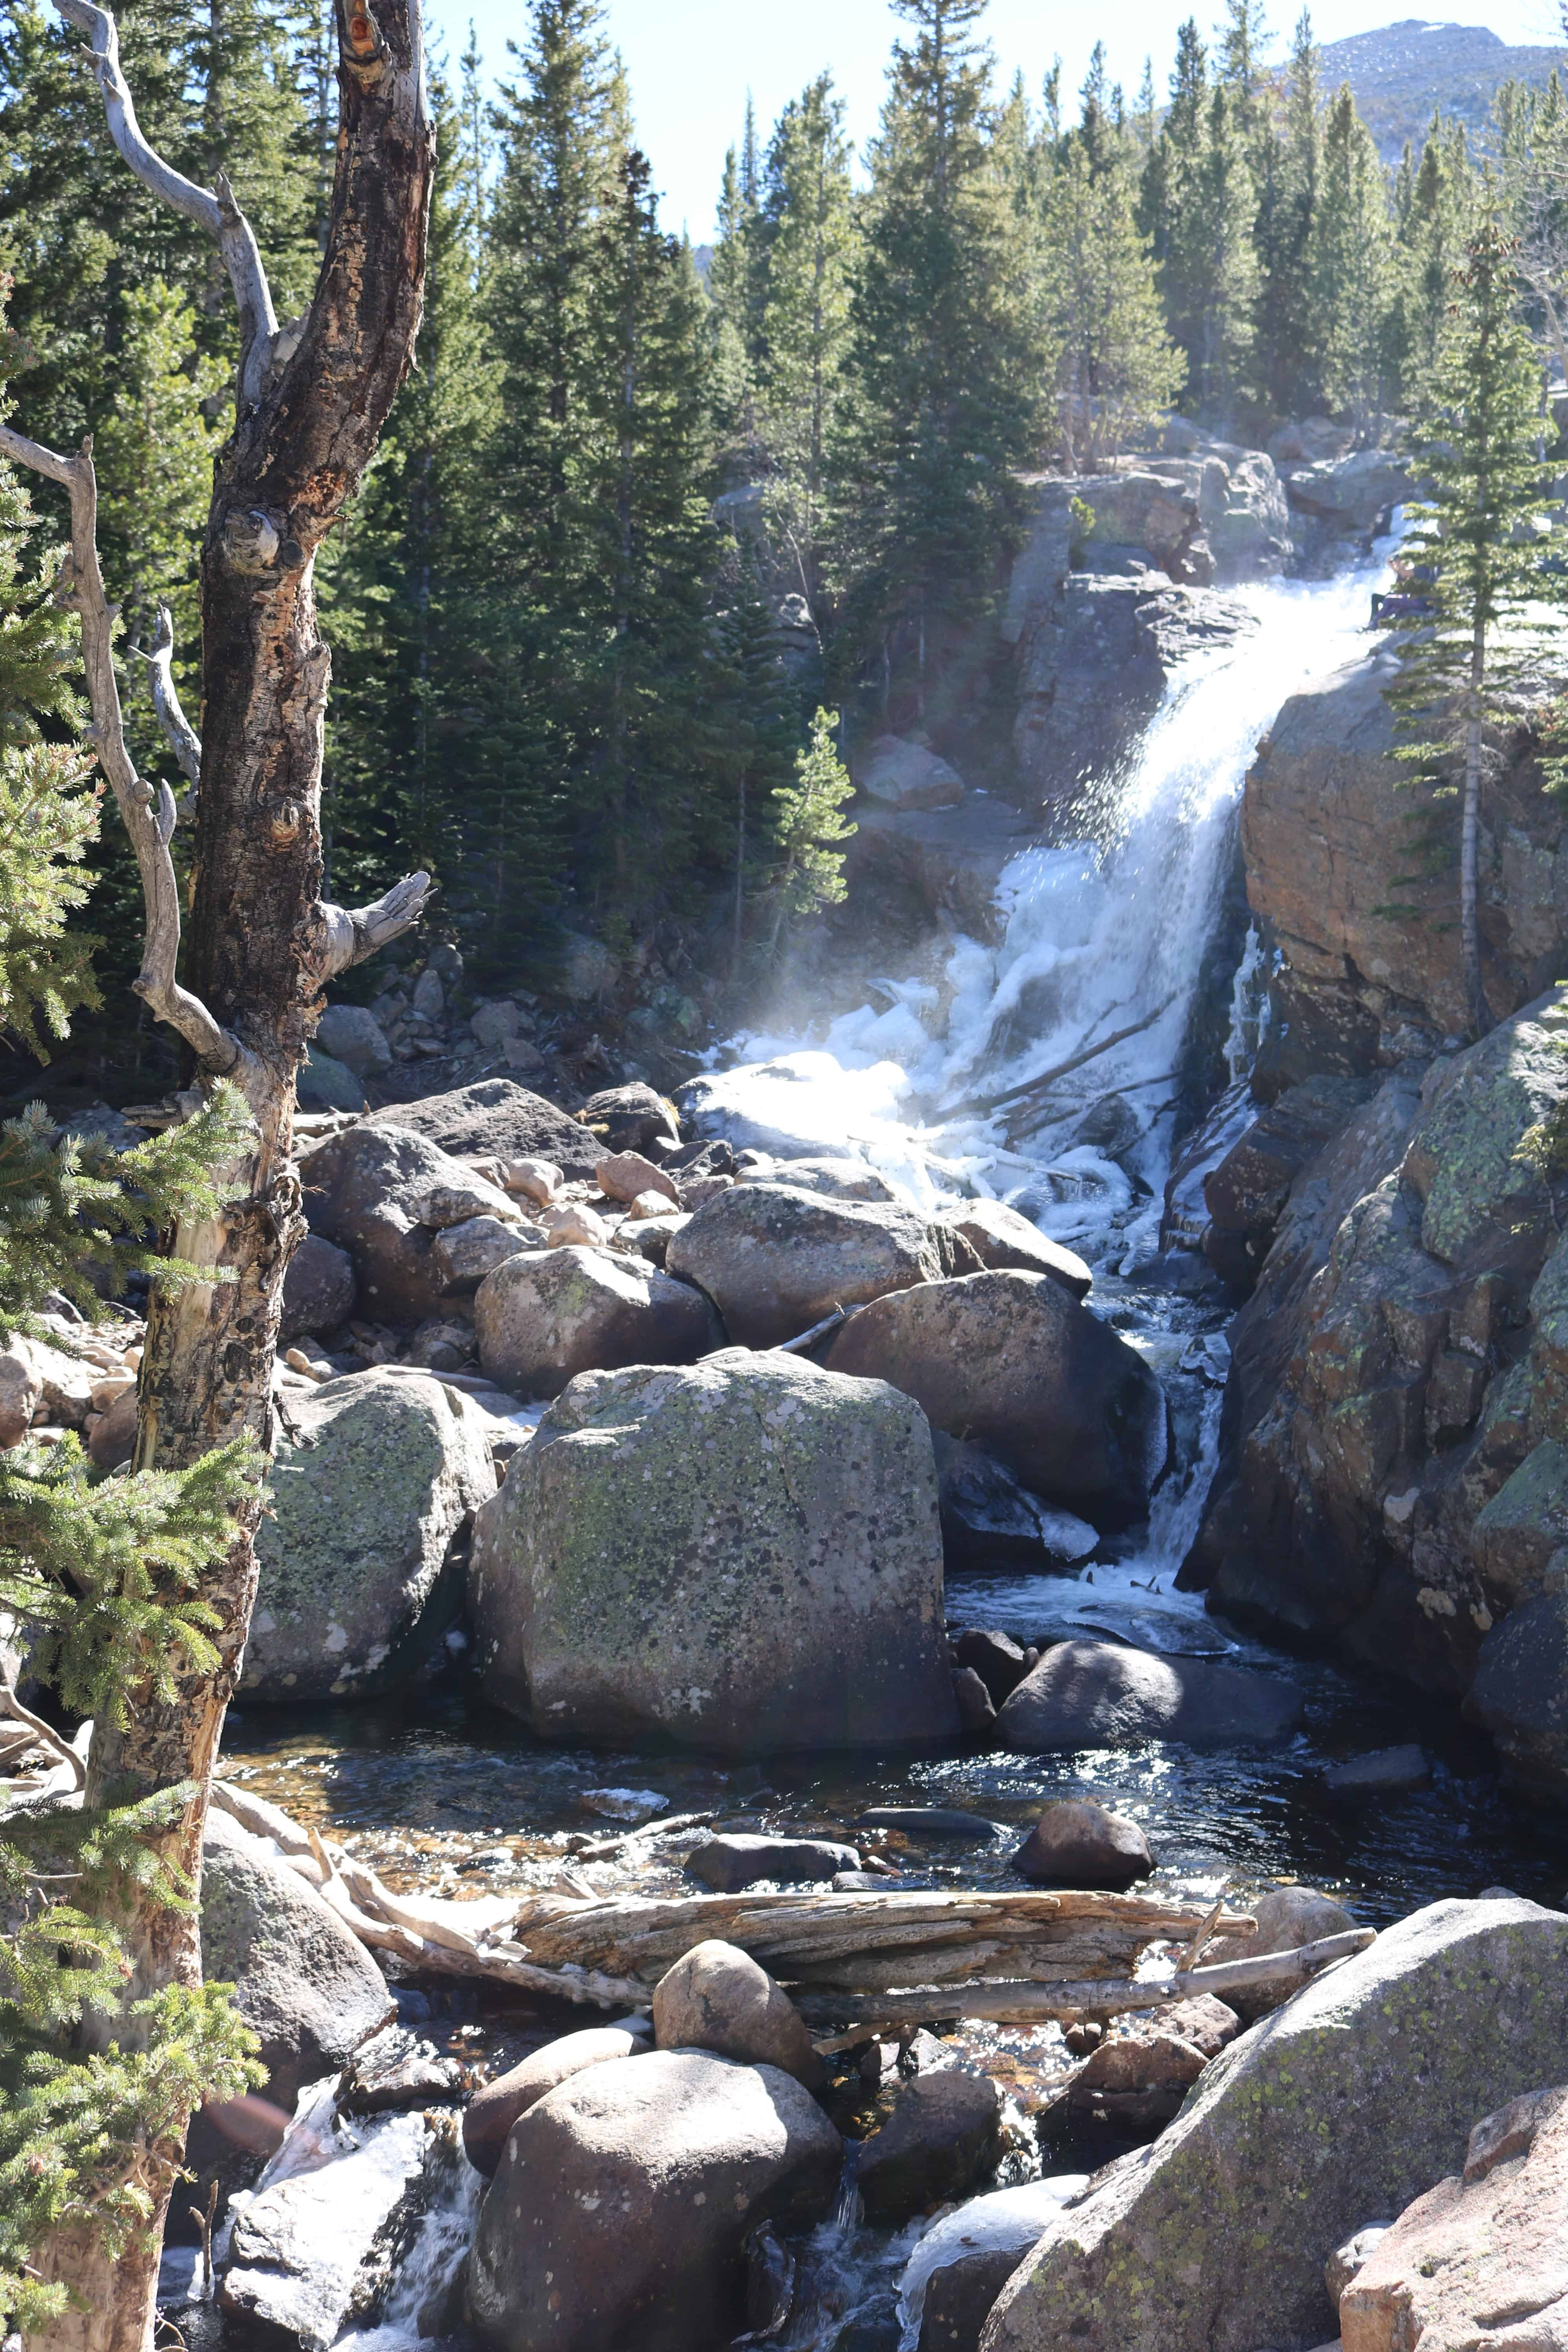 Alberta Falls - Rocky Mountain National Park - Estes Park